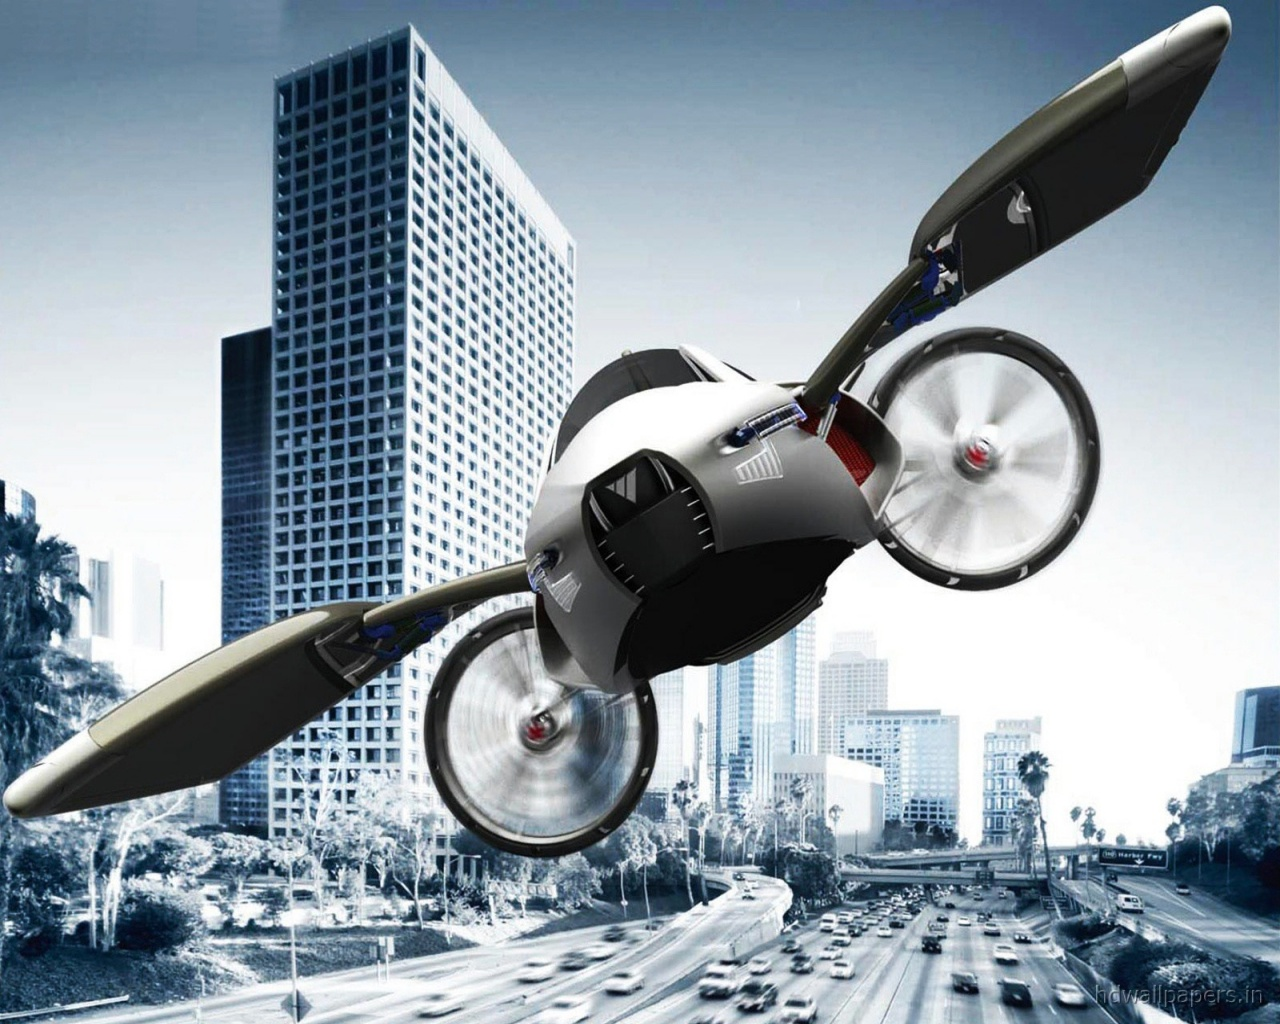 YEE Concept Flying Car Wallpapers in jpg format for download 1280x1024